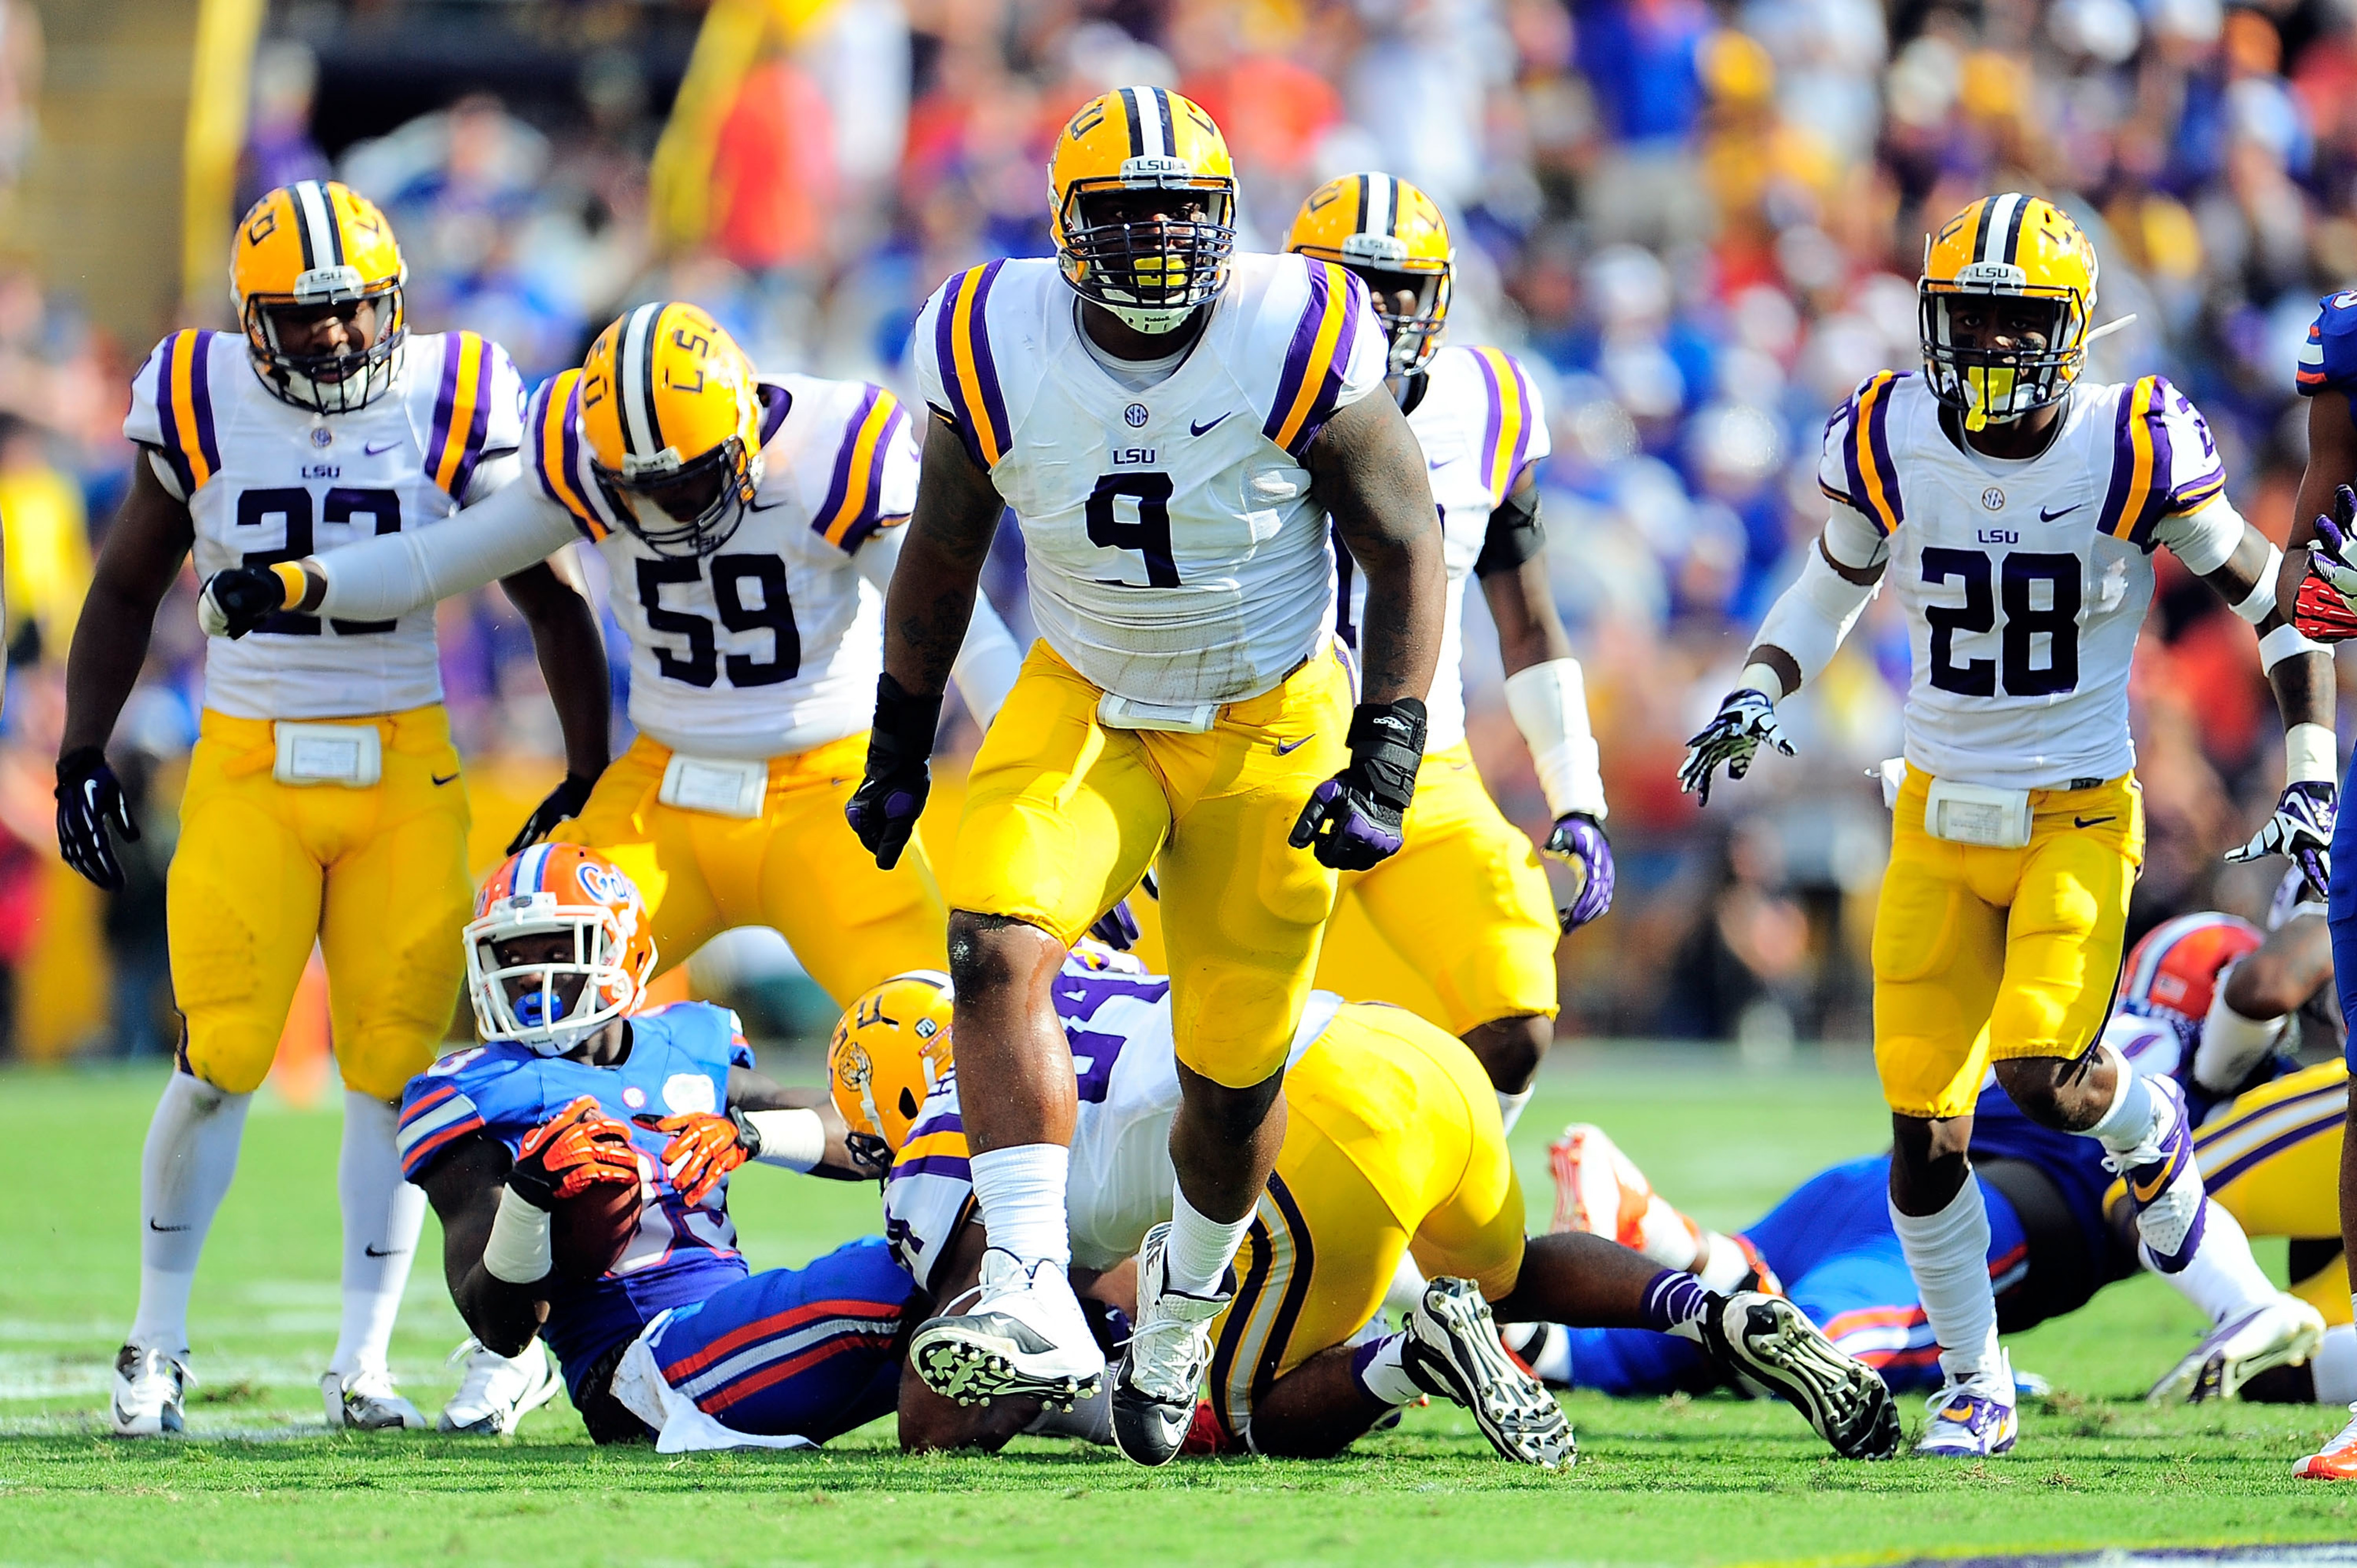 Updated 2013 bowl projections, Week 8: LSU to BCS, Bama-Oregon still on